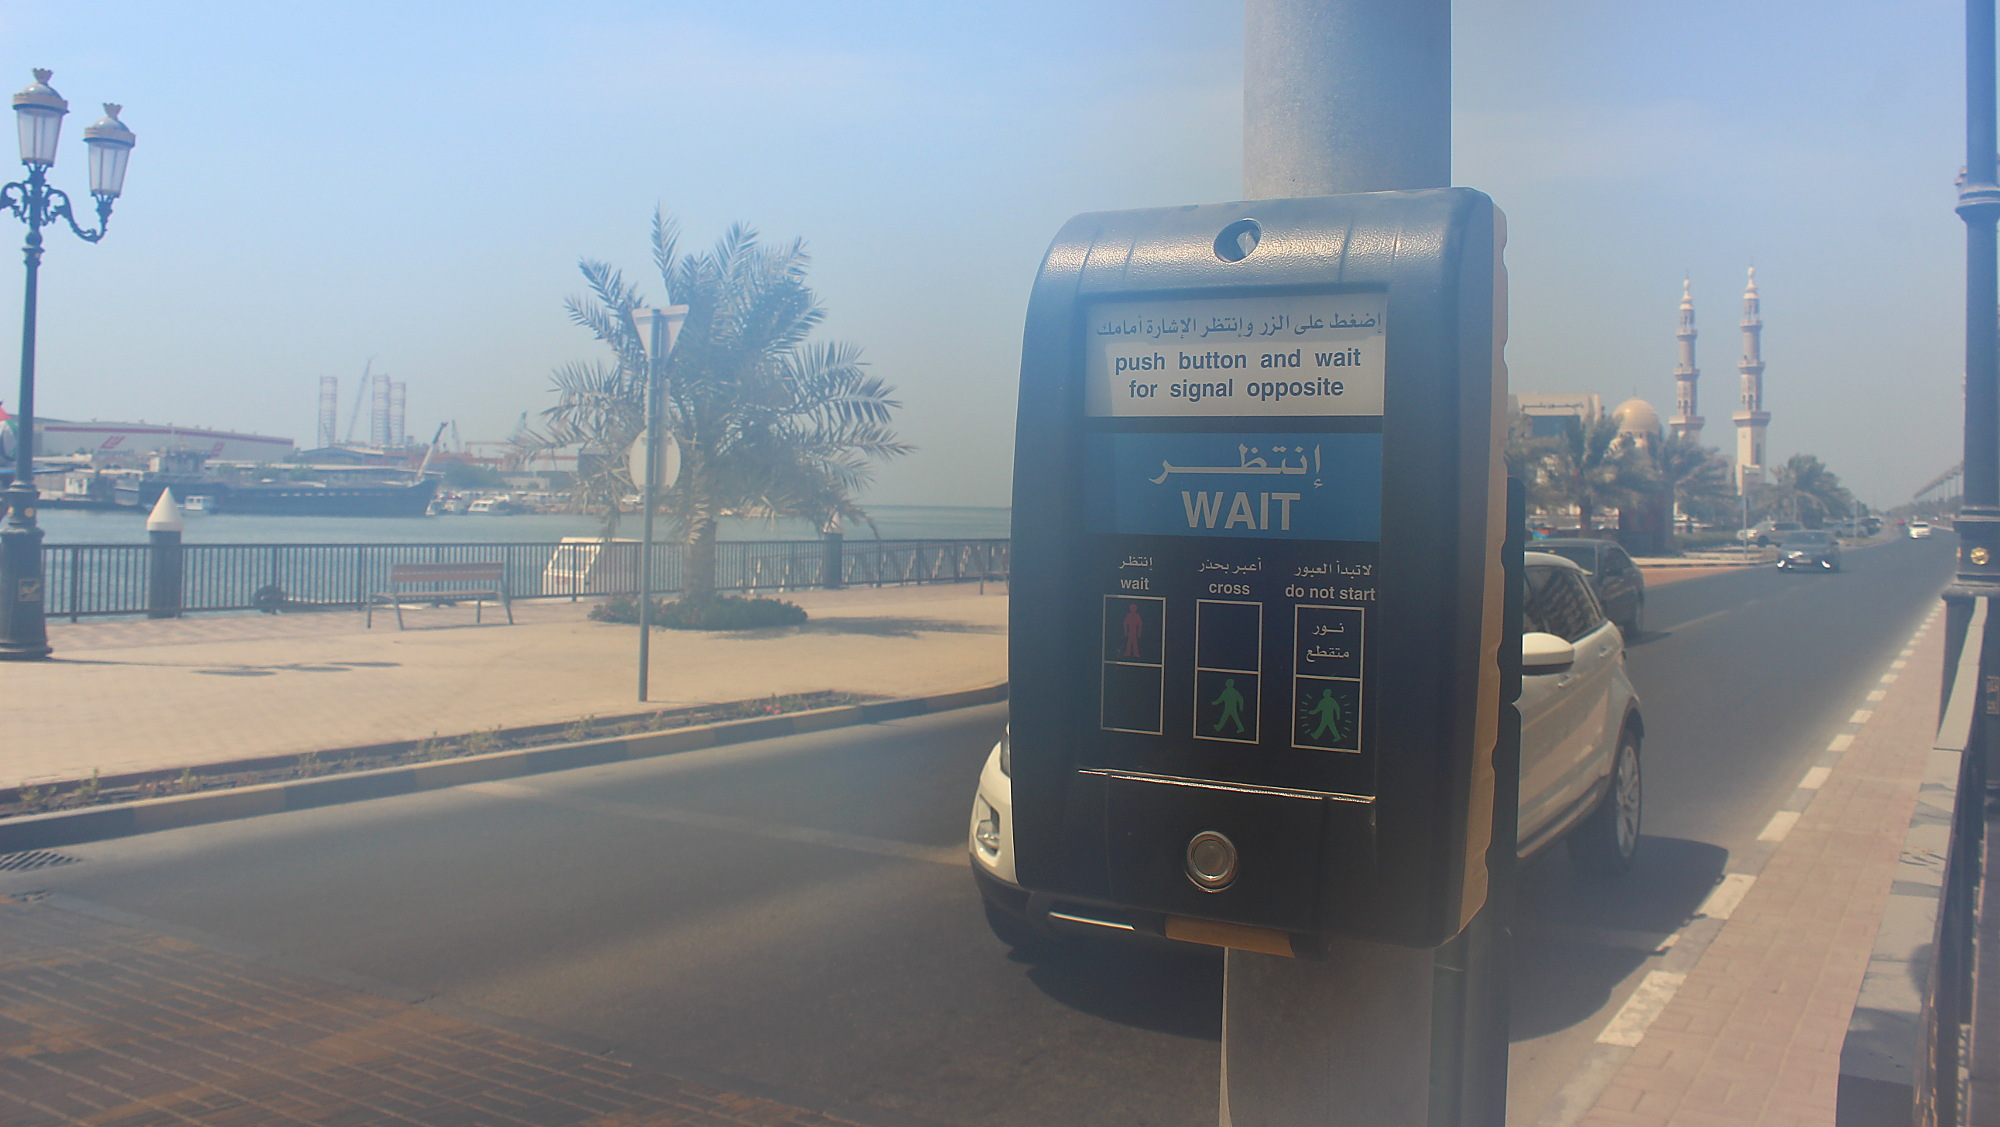 United Arab Emirates travel advice. Pedestrian traffic light instructions in a picture taken with a misty lens in the humidity of Dubai.